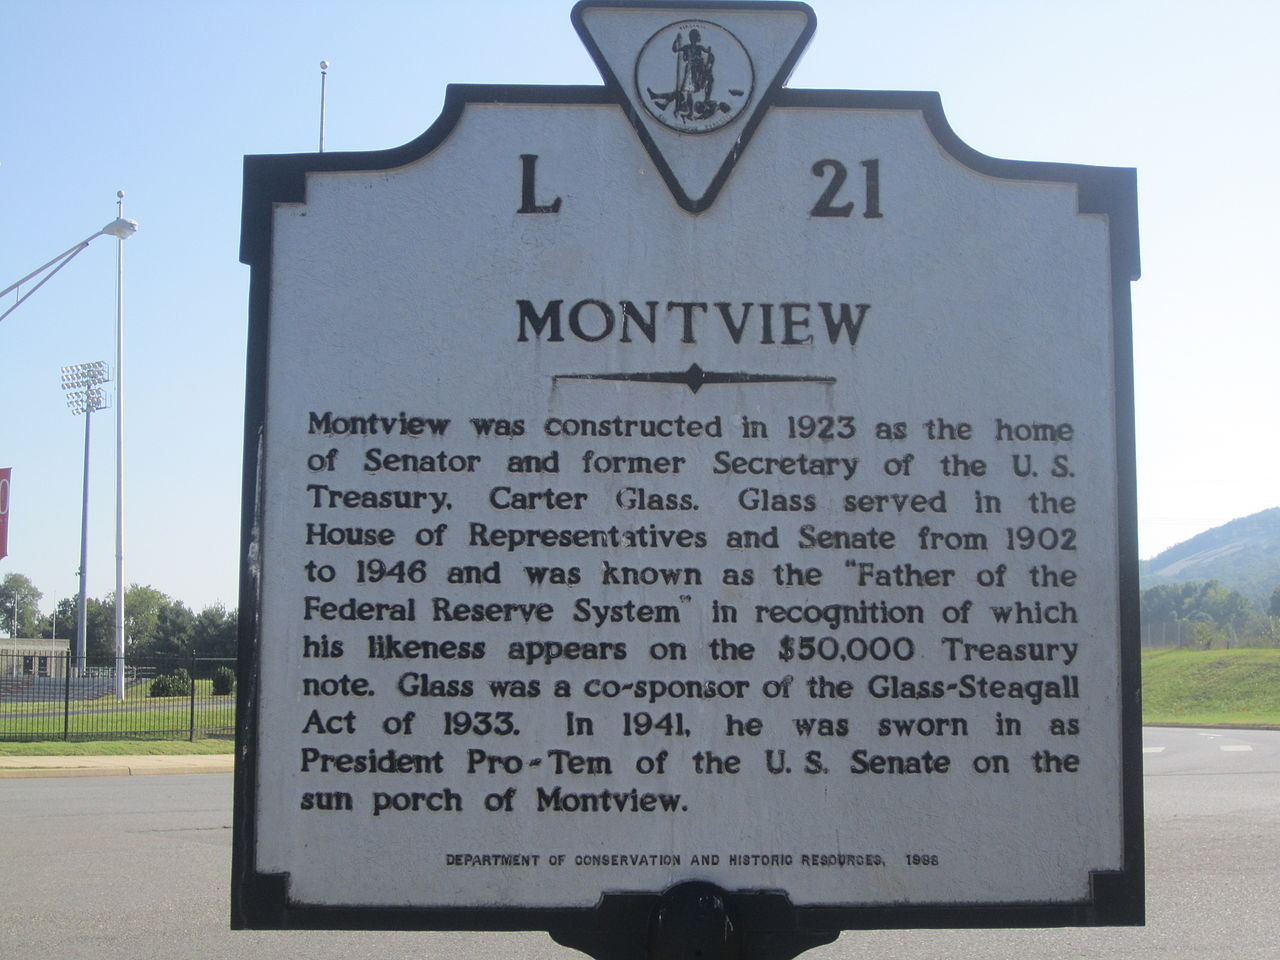 The historical marker about Montview